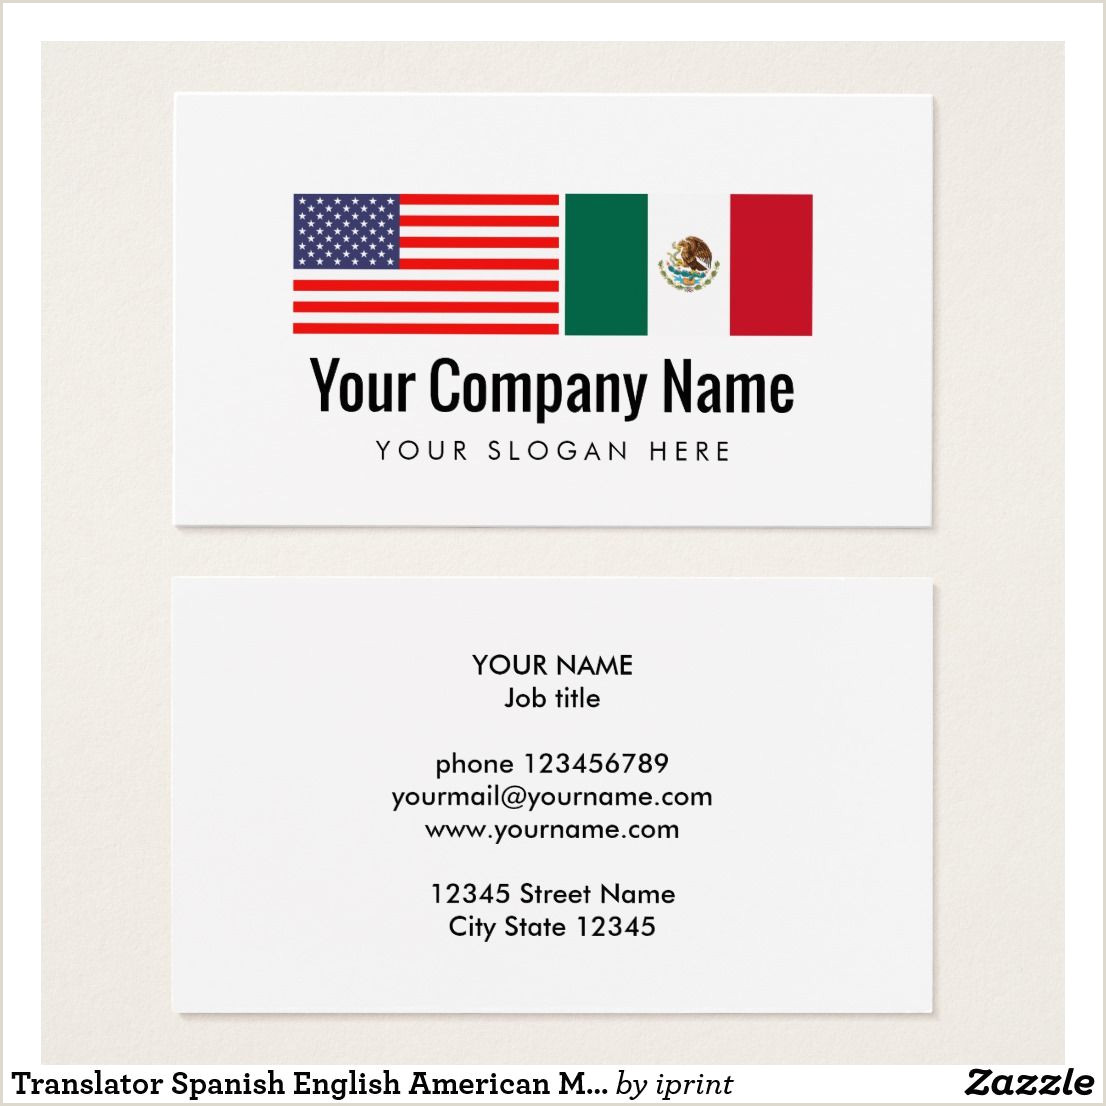 Travel Blog Business Cards Translator Spanish English American Mexican Flag Business